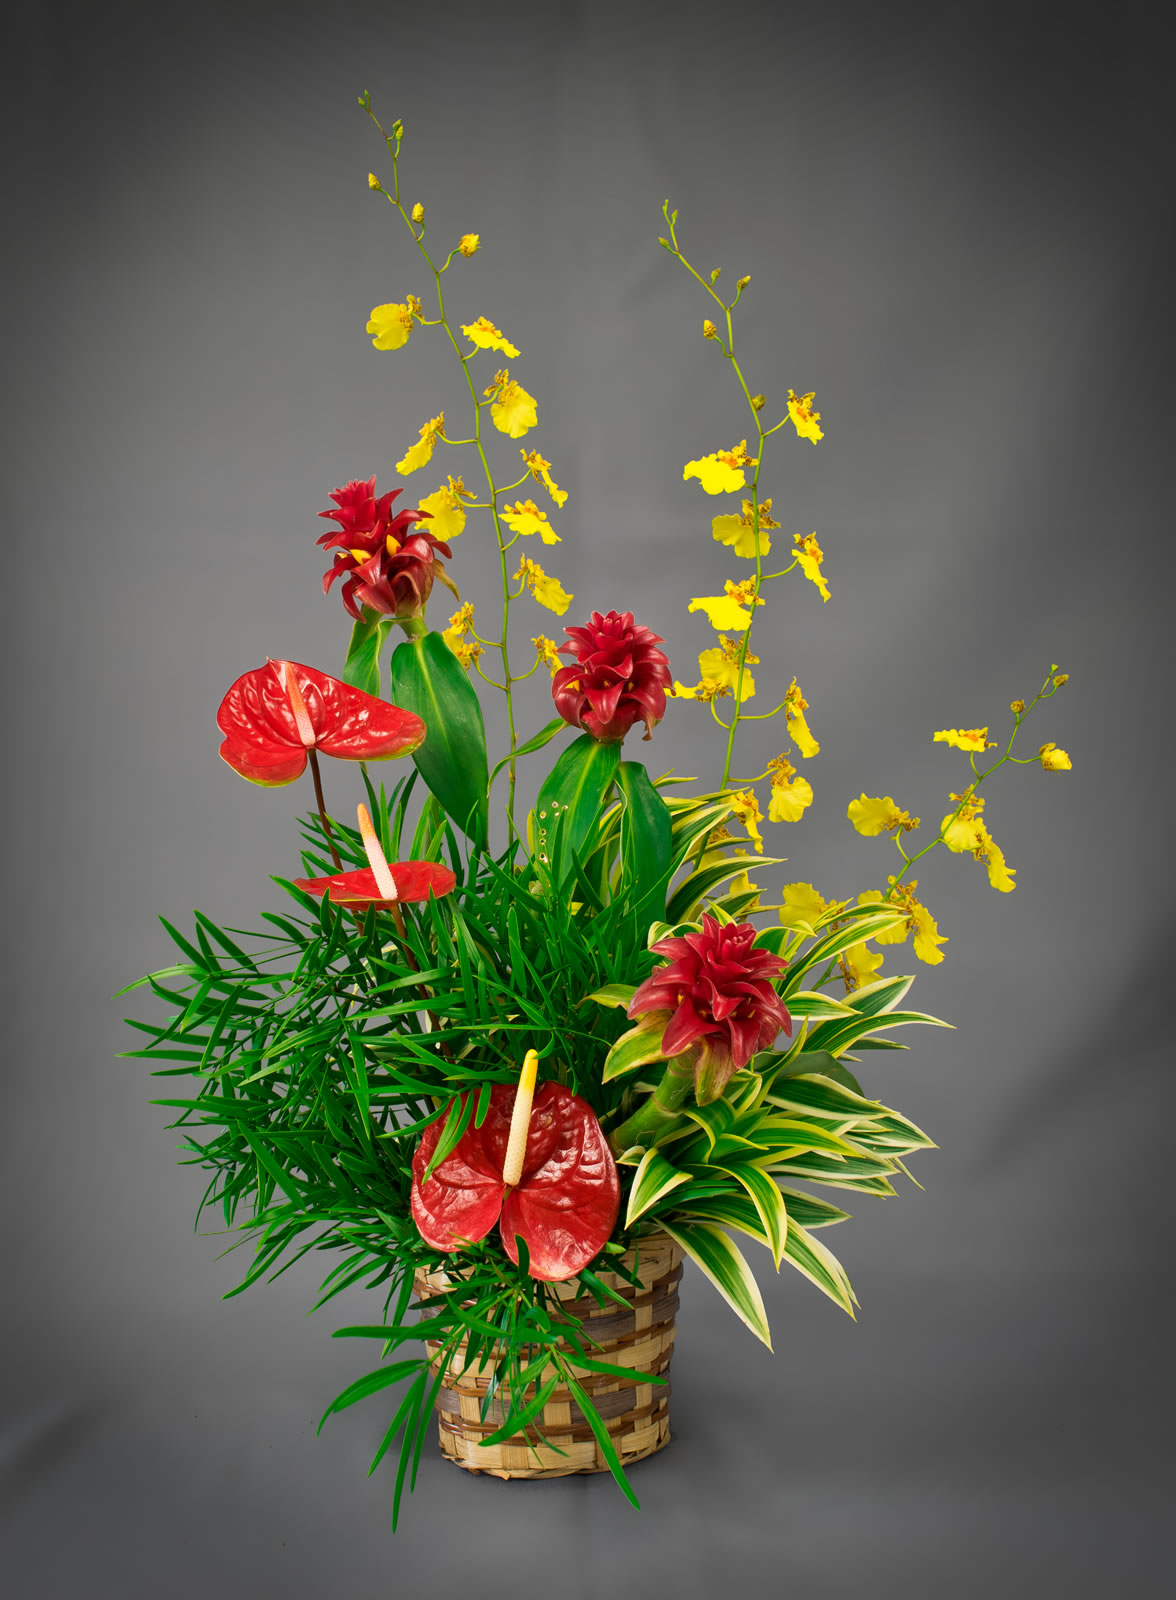 Hawaiian Tropical Flower Arrangements Delivered Ready For Display